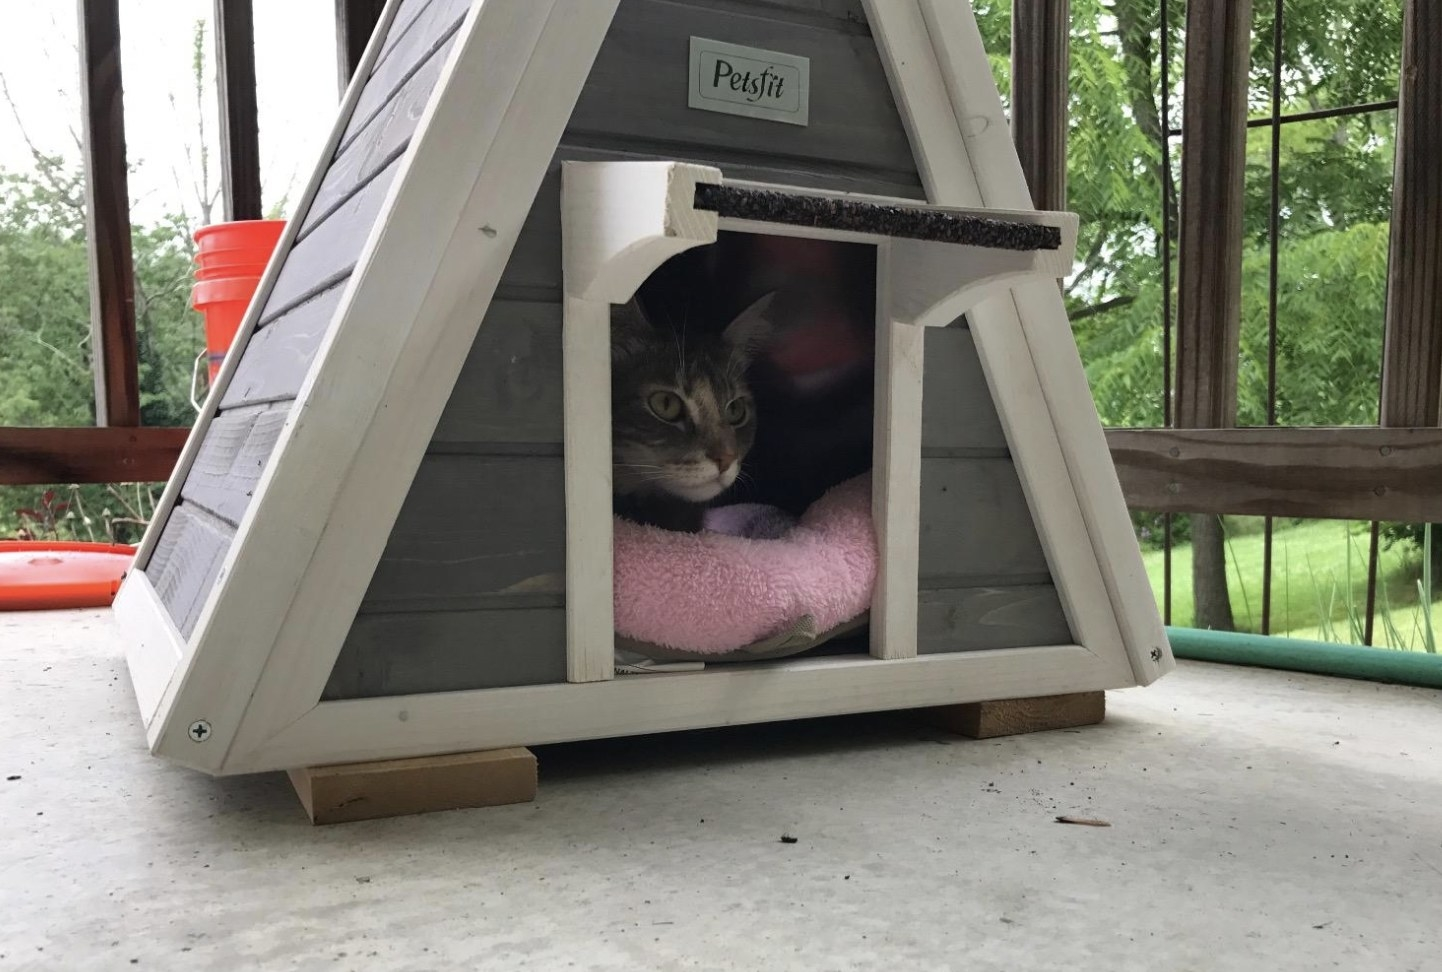 a cat resting inside an outdoor cat house that is resting on a porch